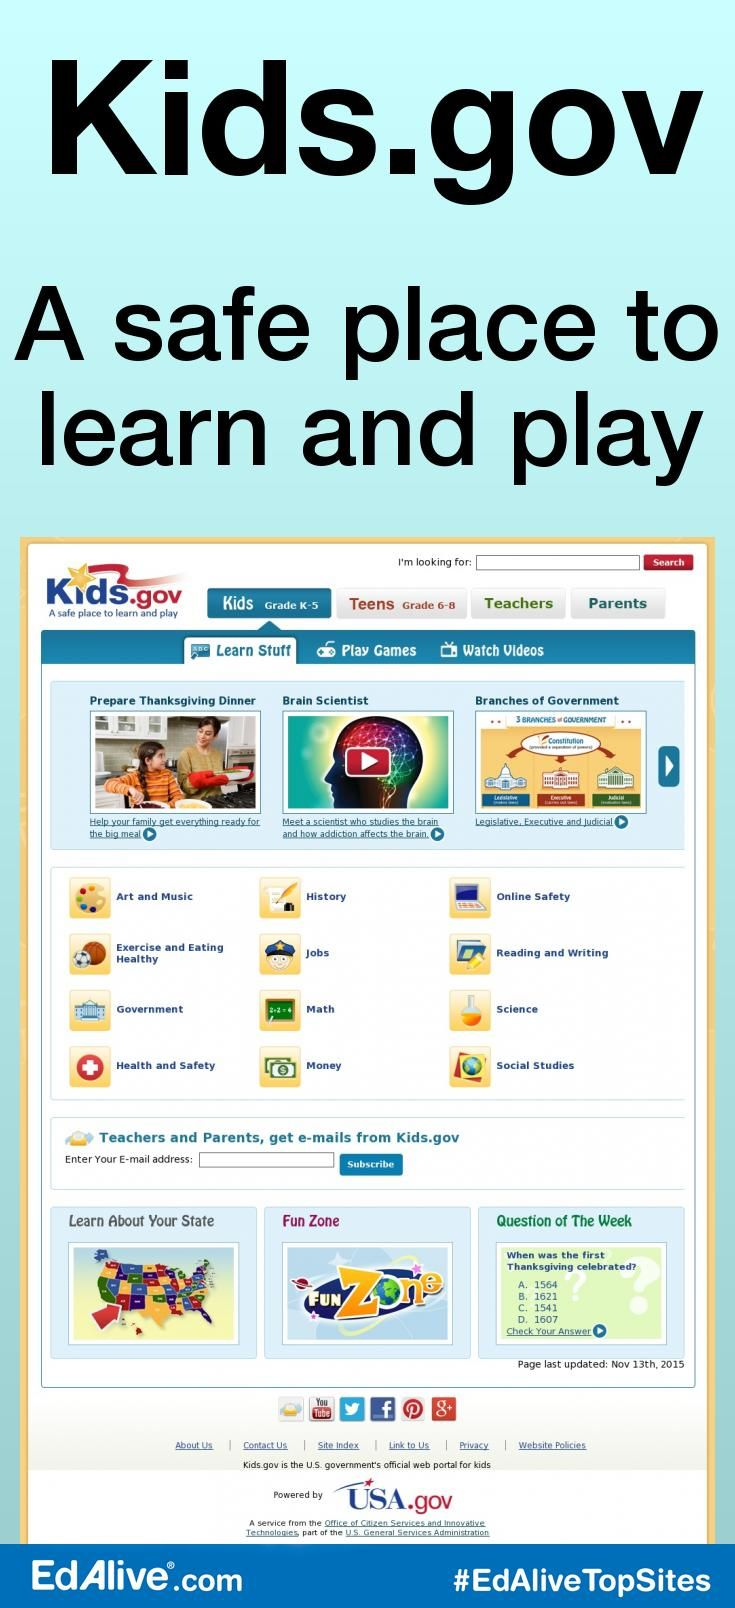 Kids.gov | A safe place to learn and play | The official kids' portal for the U.S. Gov. link kids, parents and teachers to information and services on the web from government agencies, schools, and educational organizations, all geared to the learning level and interest of kids. Kids.gov is organized into four audiences: Kids Grades K-5, Teens Grades 6-8, Teachers and Parents. Each audience tab is divided into educational subjects like Arts, Math, and History #CrossCurricular